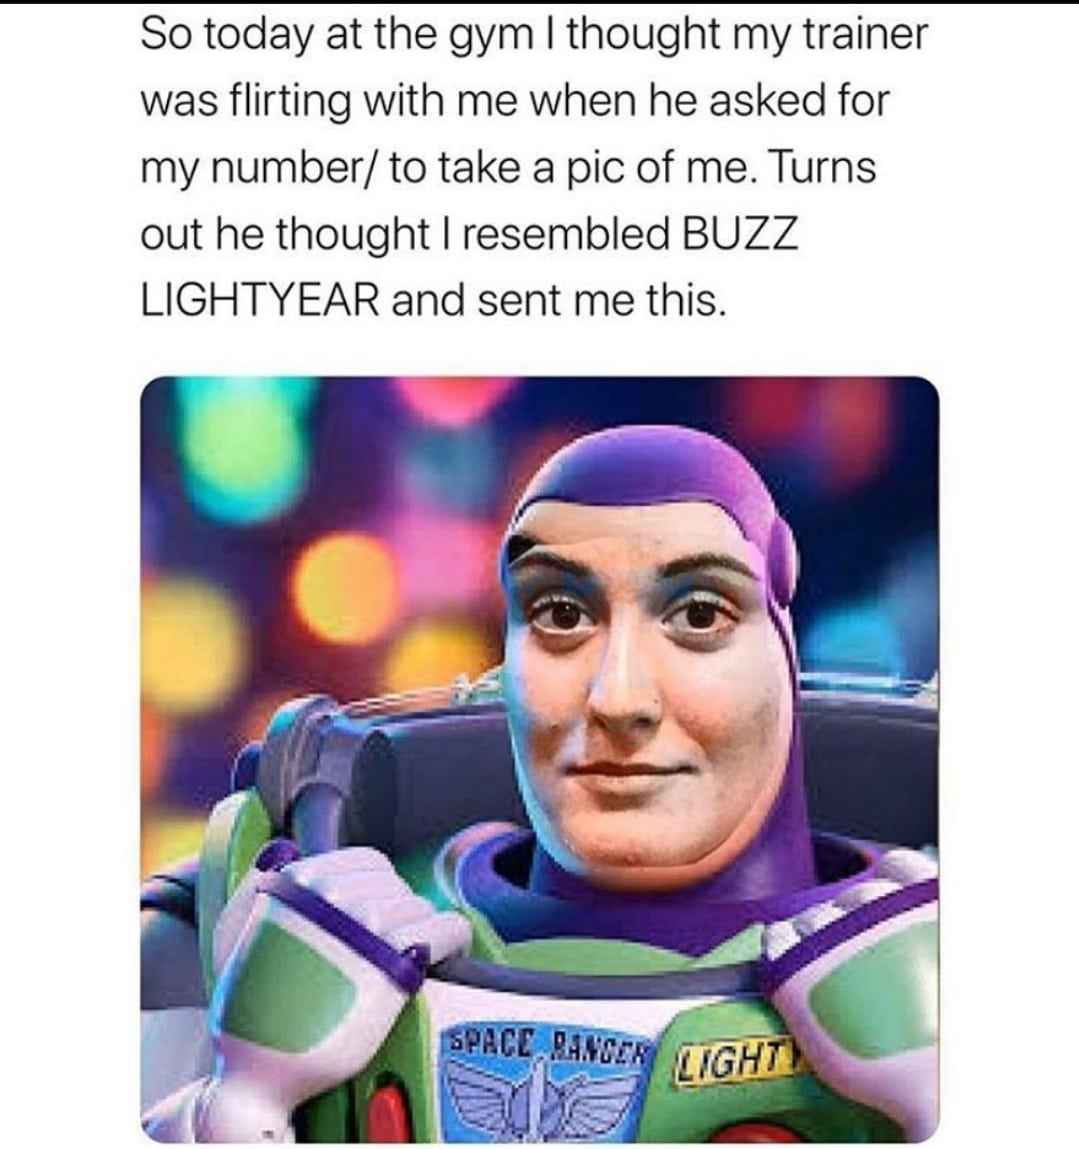 Depression, Buzz, Life depression memes Depression, Buzz, Life text: So today at the gym I thought my trainer was flirting with me when he asked for my number/ to take a pic of me. Turns out he thought I resembled BUZZ LIGHTYEAR and sent me this.